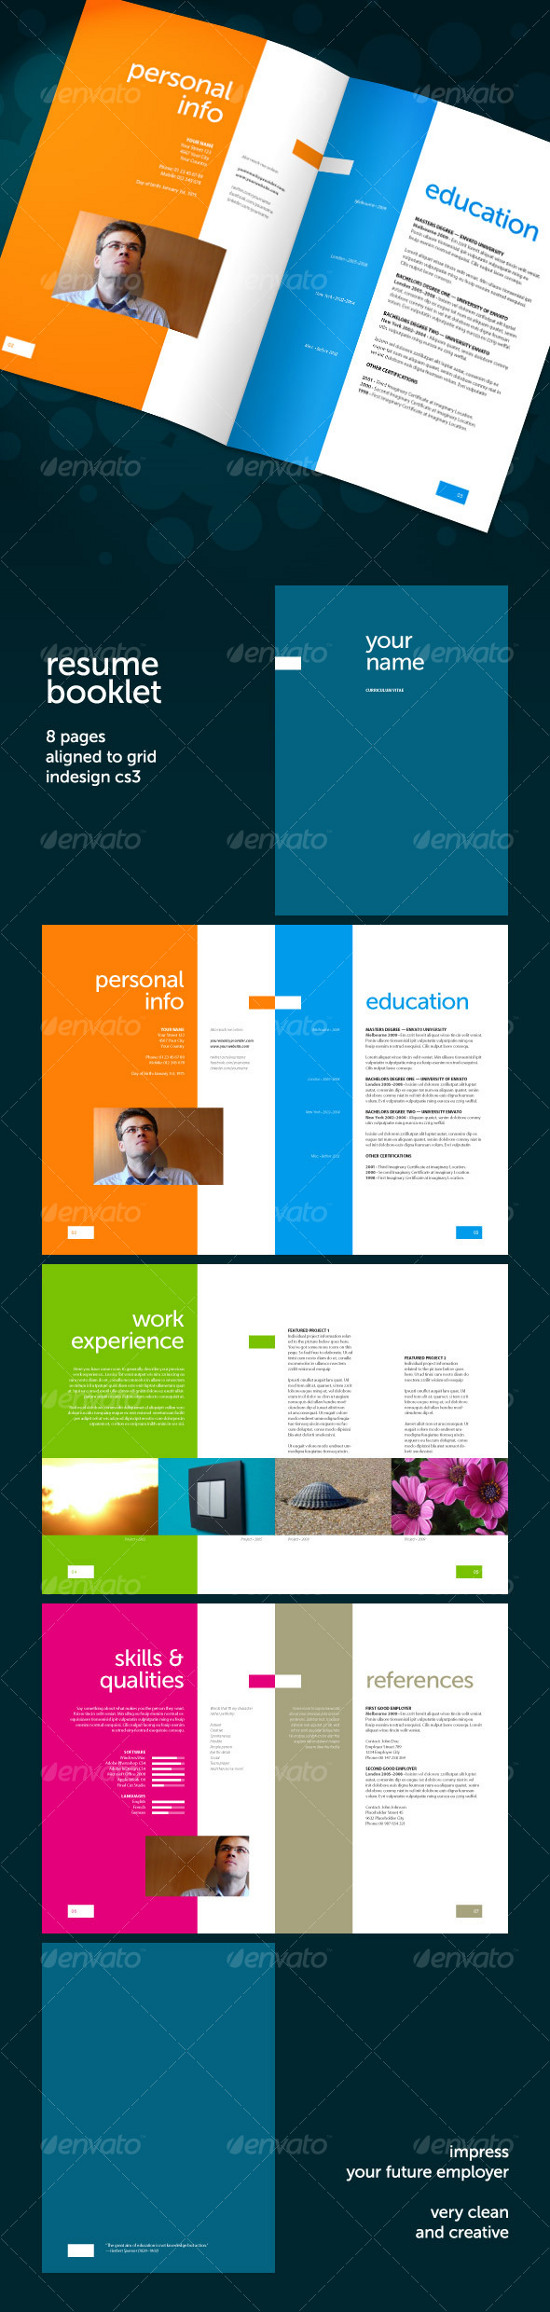 Get your Dream Job - 15 Clean & Elegant Resume Templates